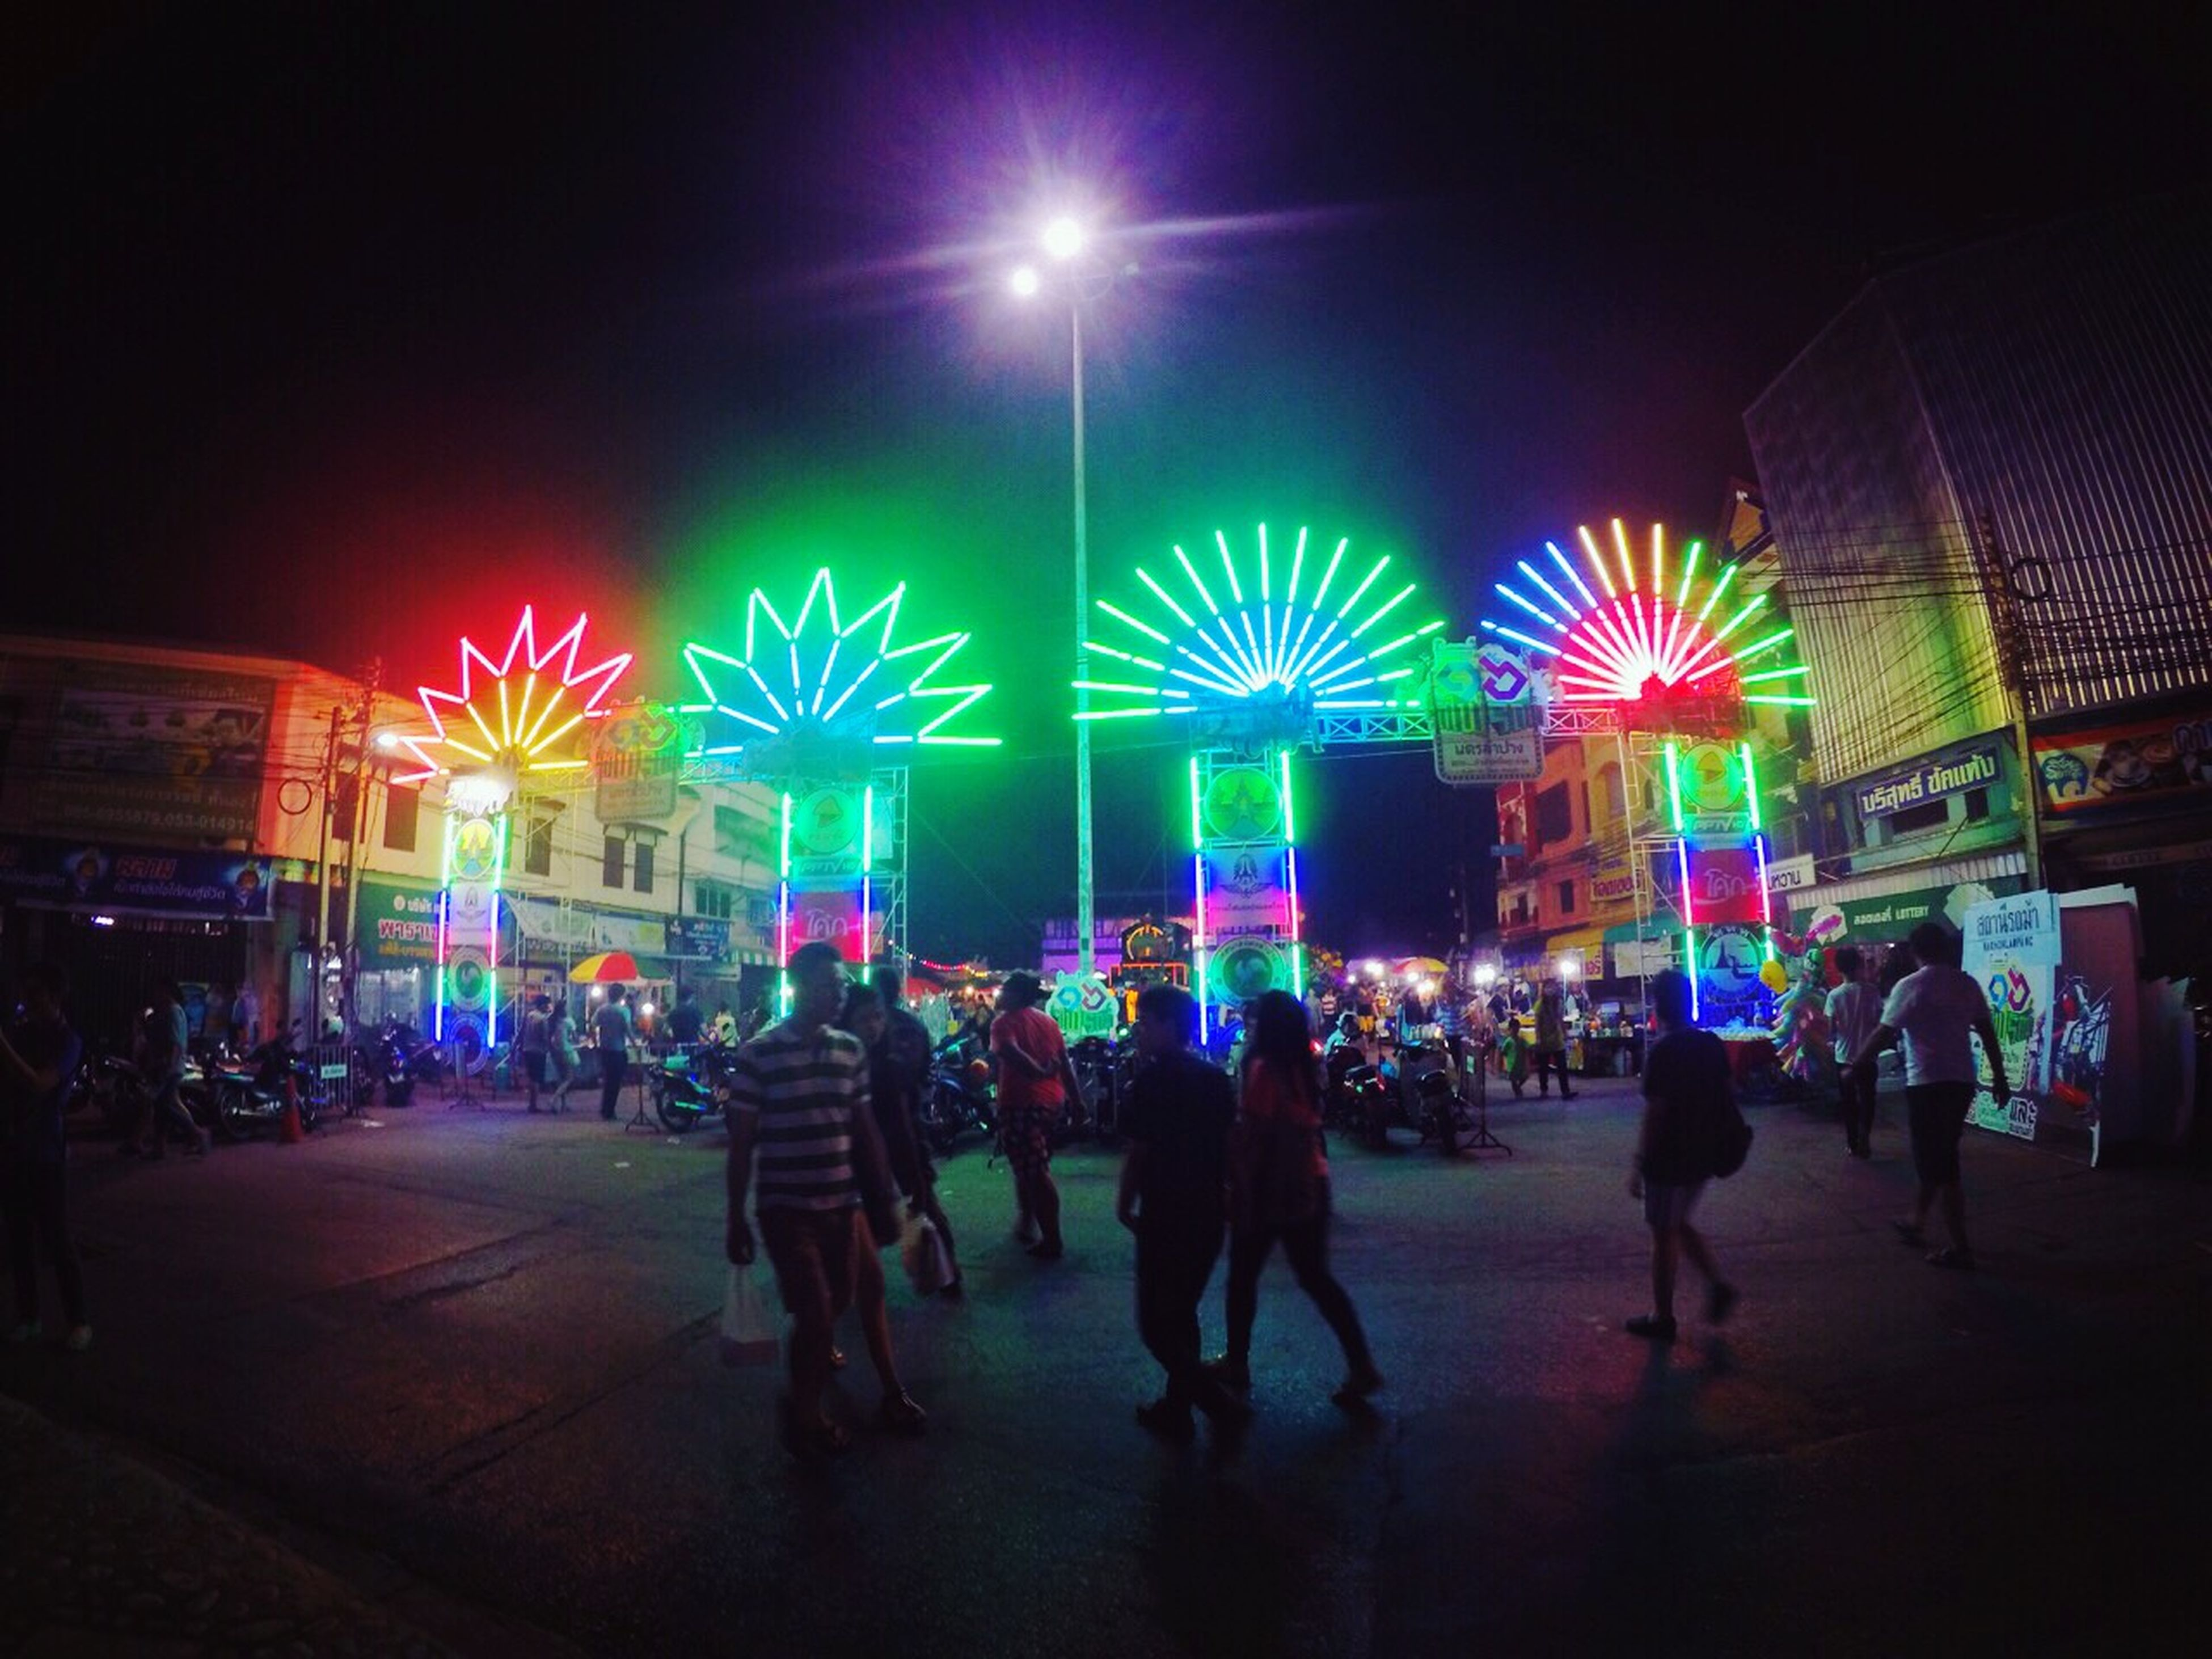 illuminated, night, large group of people, lighting equipment, lifestyles, men, leisure activity, built structure, arts culture and entertainment, architecture, building exterior, person, celebration, city, city life, crowd, mixed age range, light - natural phenomenon, group of people